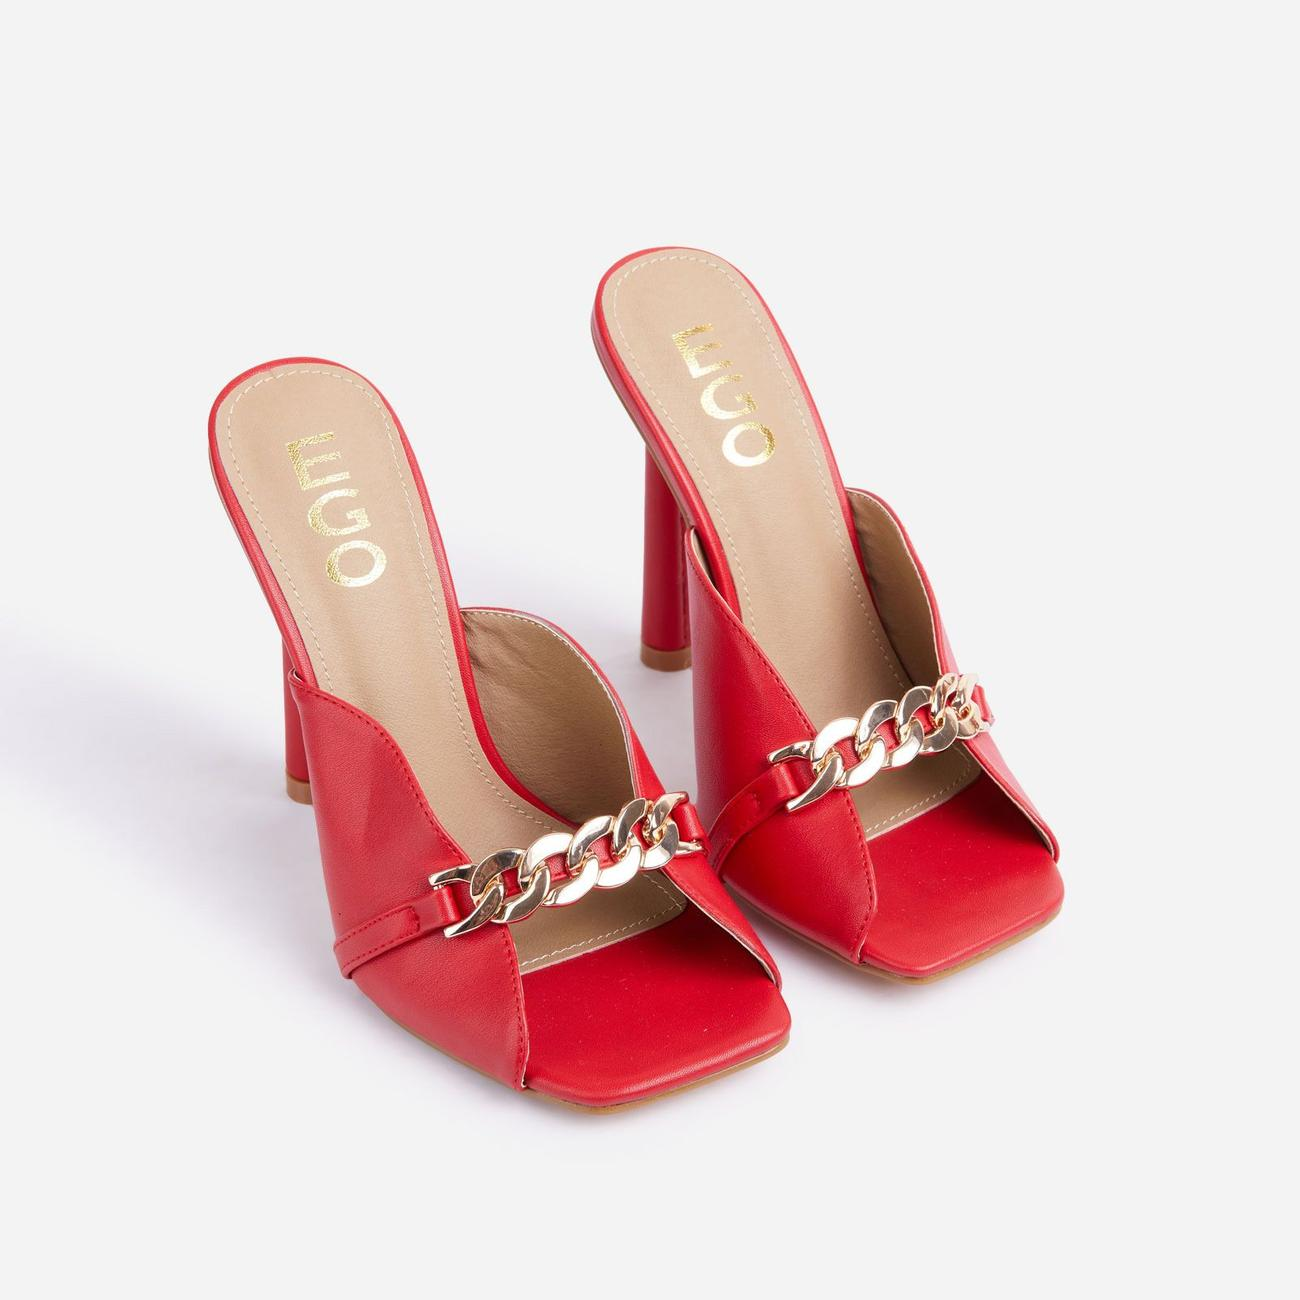 Gossip Chain Detail Square Peep Toe Heel Mule In Red Faux Leather Image 2